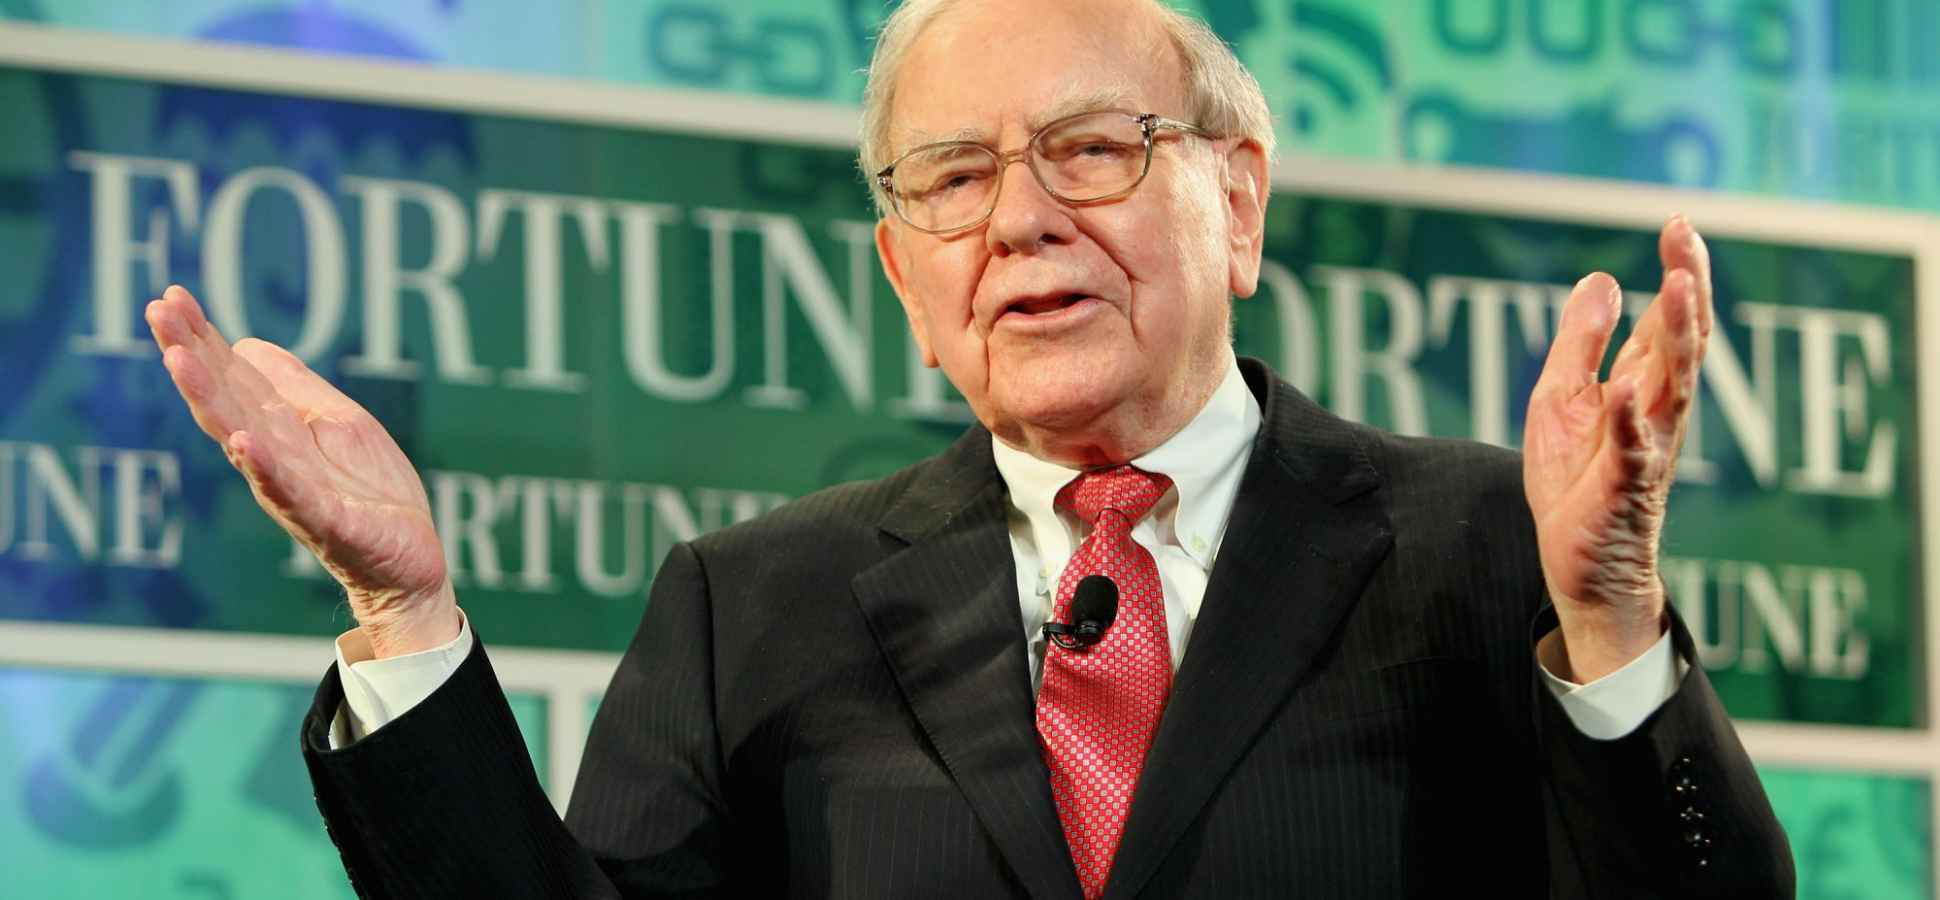 9 Tips From Warren Buffett to Make Kids Better at Business and Life